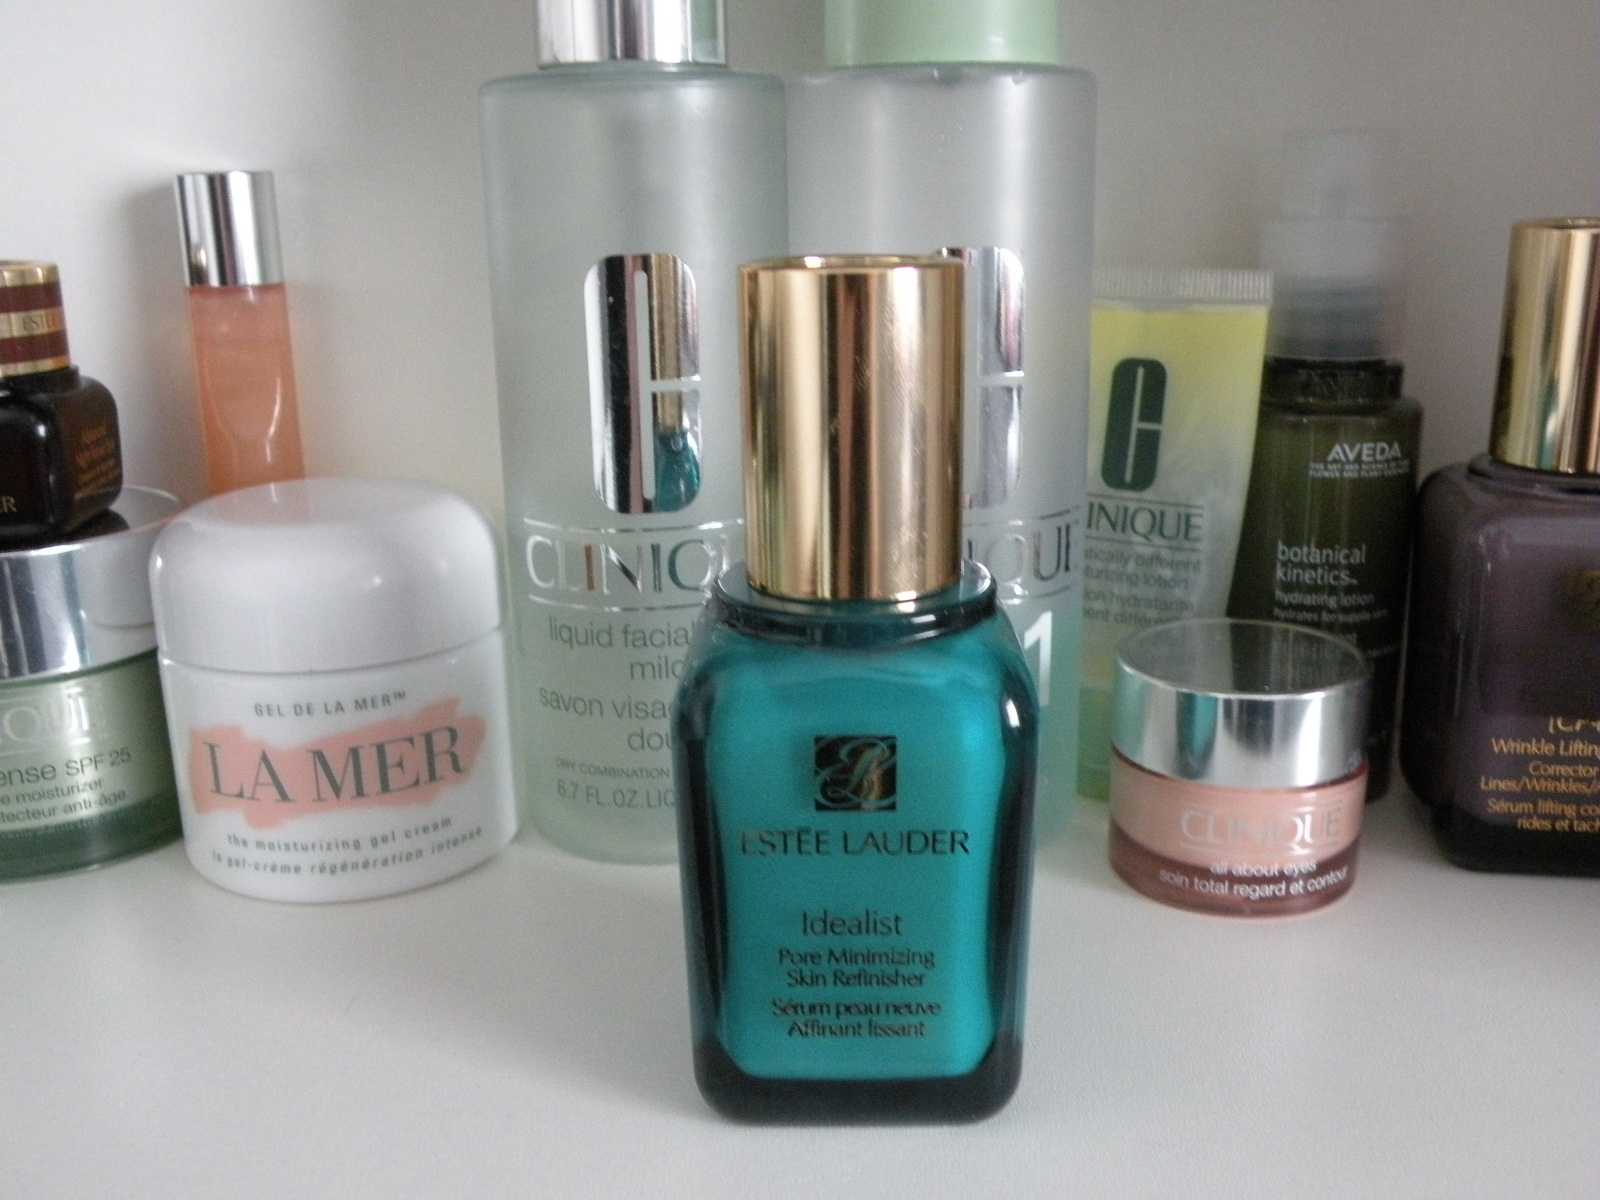 Shark Attack 2 Este Lauder Idealist Skin Refinisher And It Leaves My Very Smooth Which I Love So Im Thinking Going To Get A New Pore Minimizer But Will Keep Using Faithfully Every